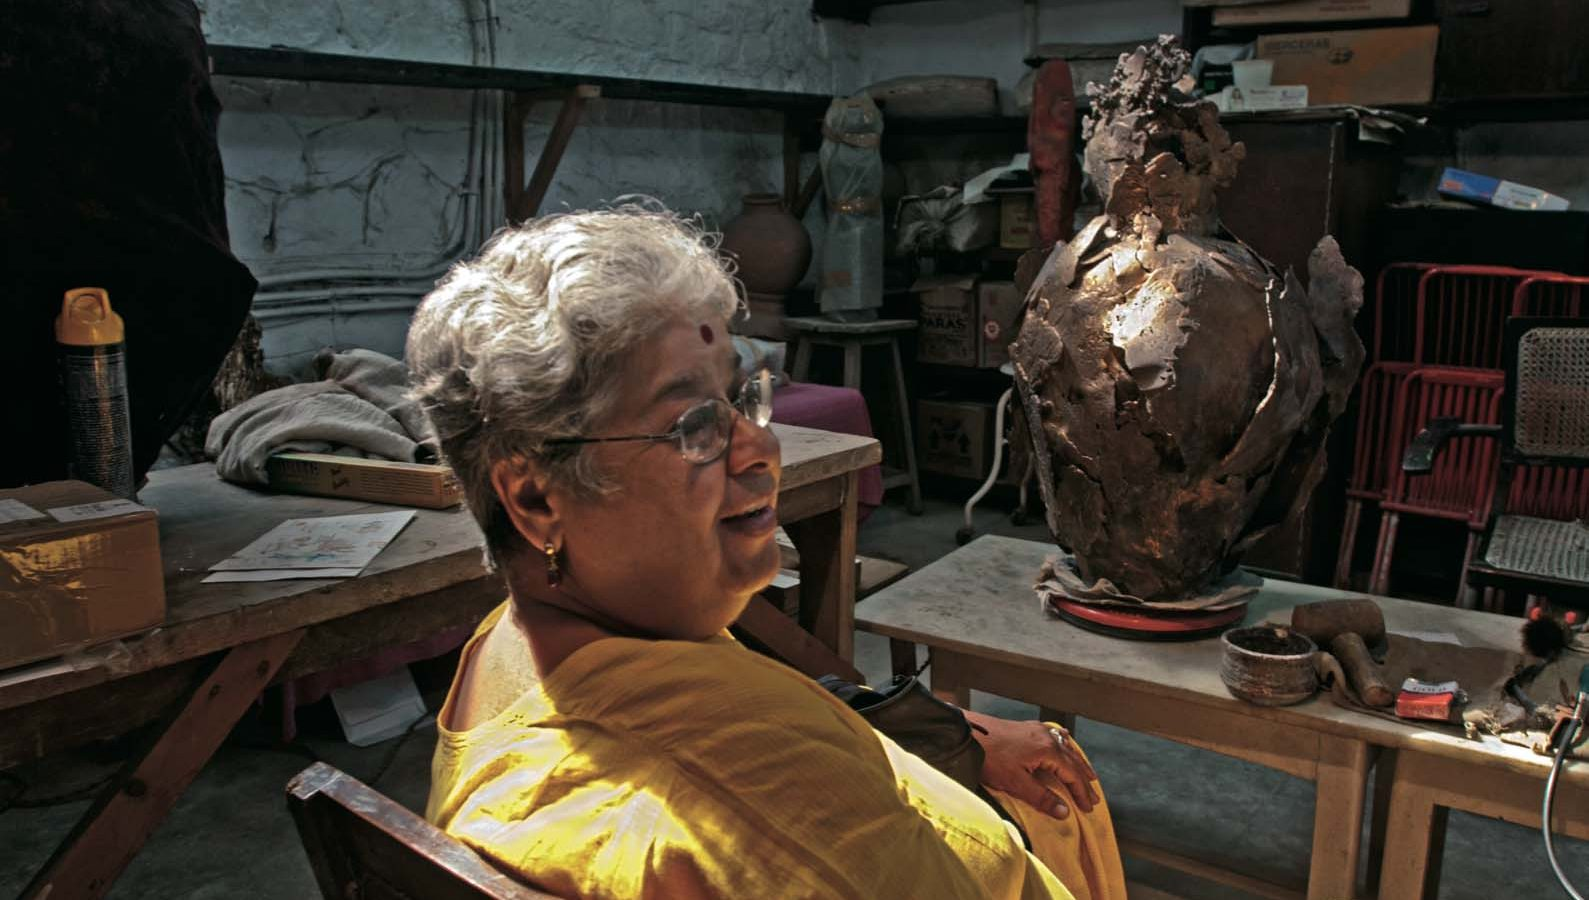 Mrinalini Mukherjee. The artist in her studio, 2015. Courtesy of Pablo Bartholomew